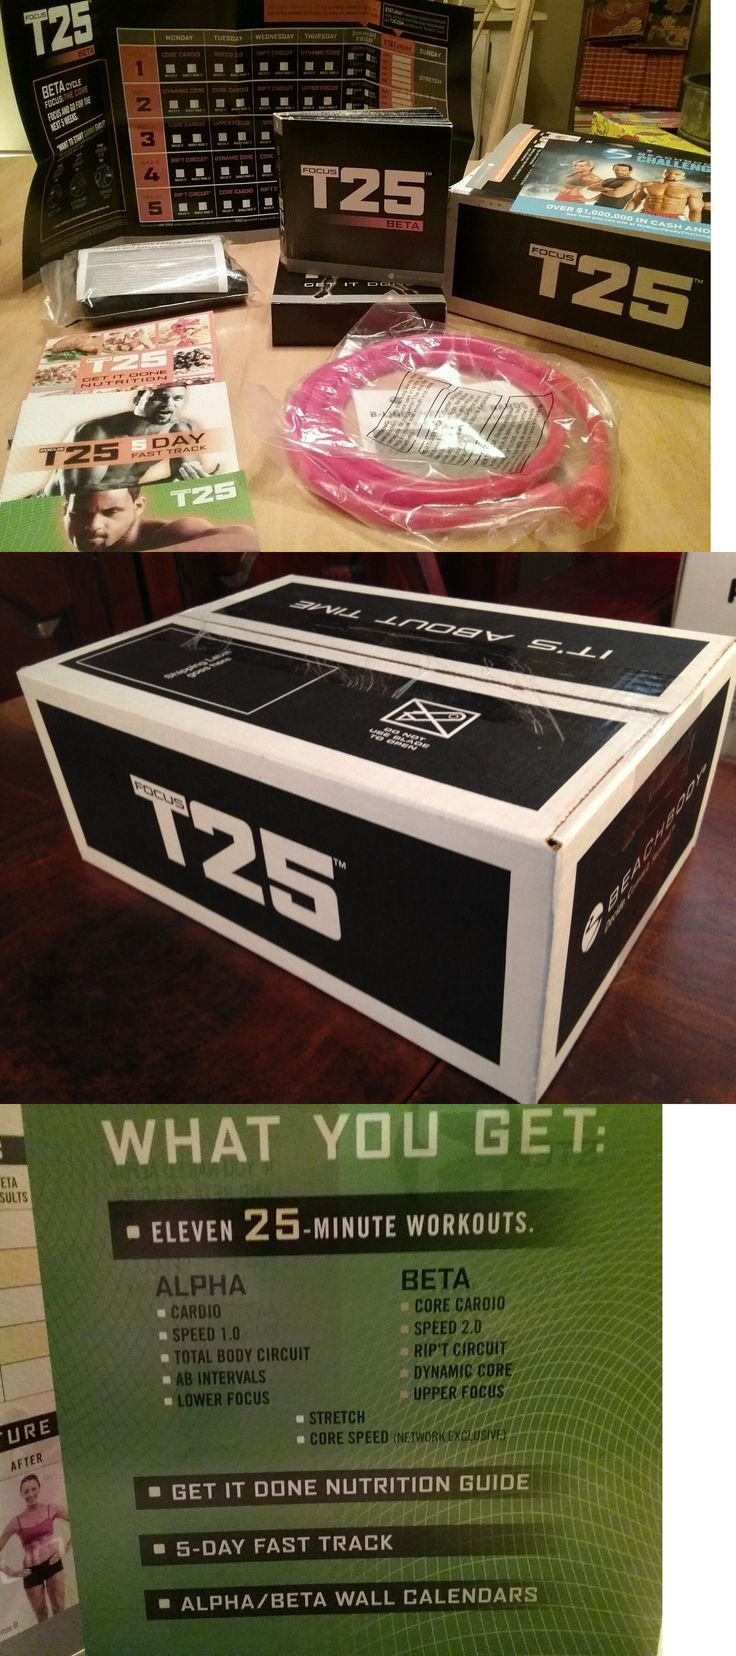 Fitness DVDs 109130: New Beachbody Sean Ts Focus T25 Workout Set Sealed Dvds Complete Base Kit Nib -> BUY IT NOW ONLY: $92.99 on eBay!